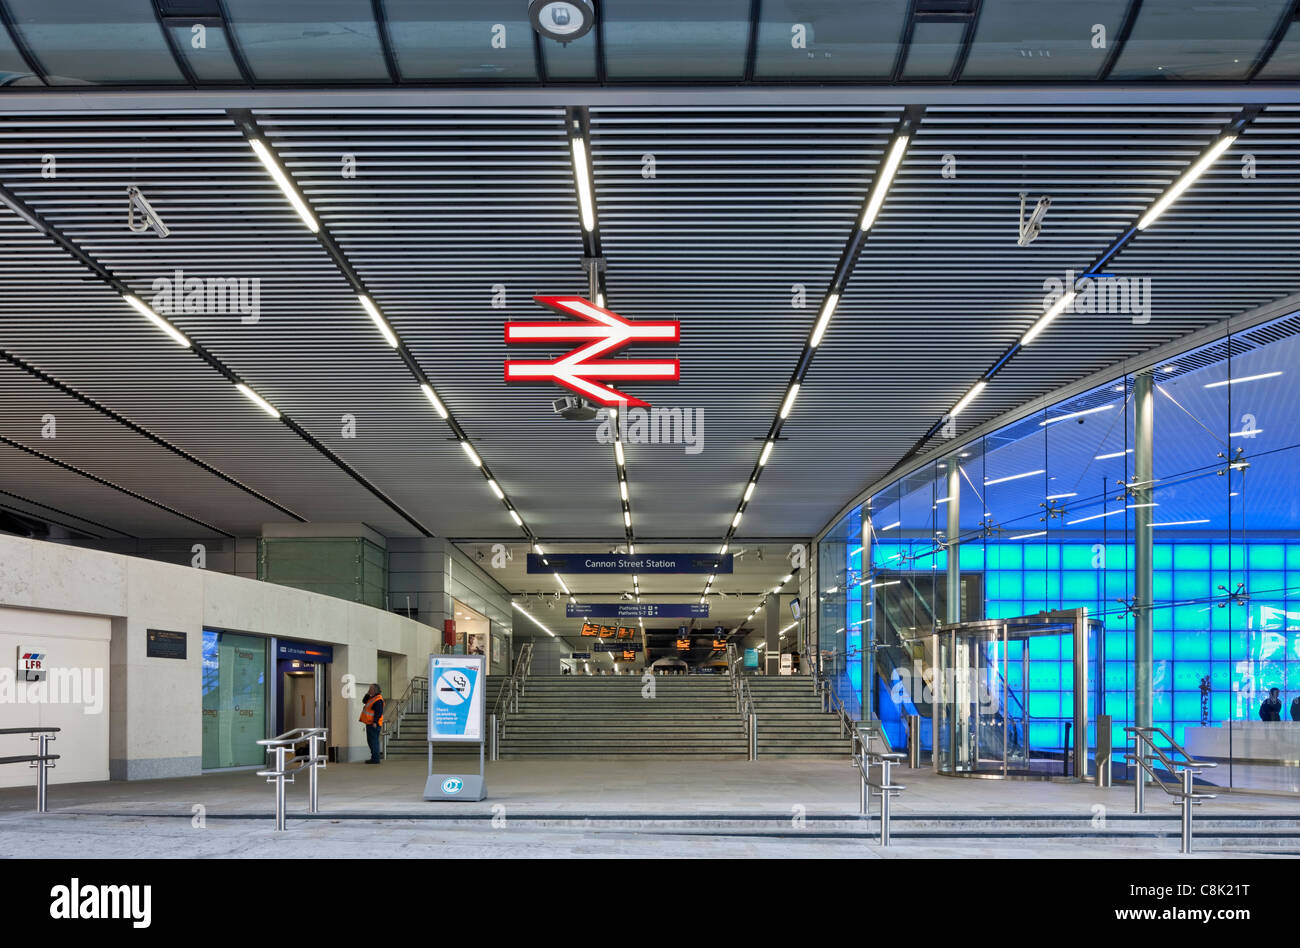 Cannon Street Station in the City of London - Stock Image